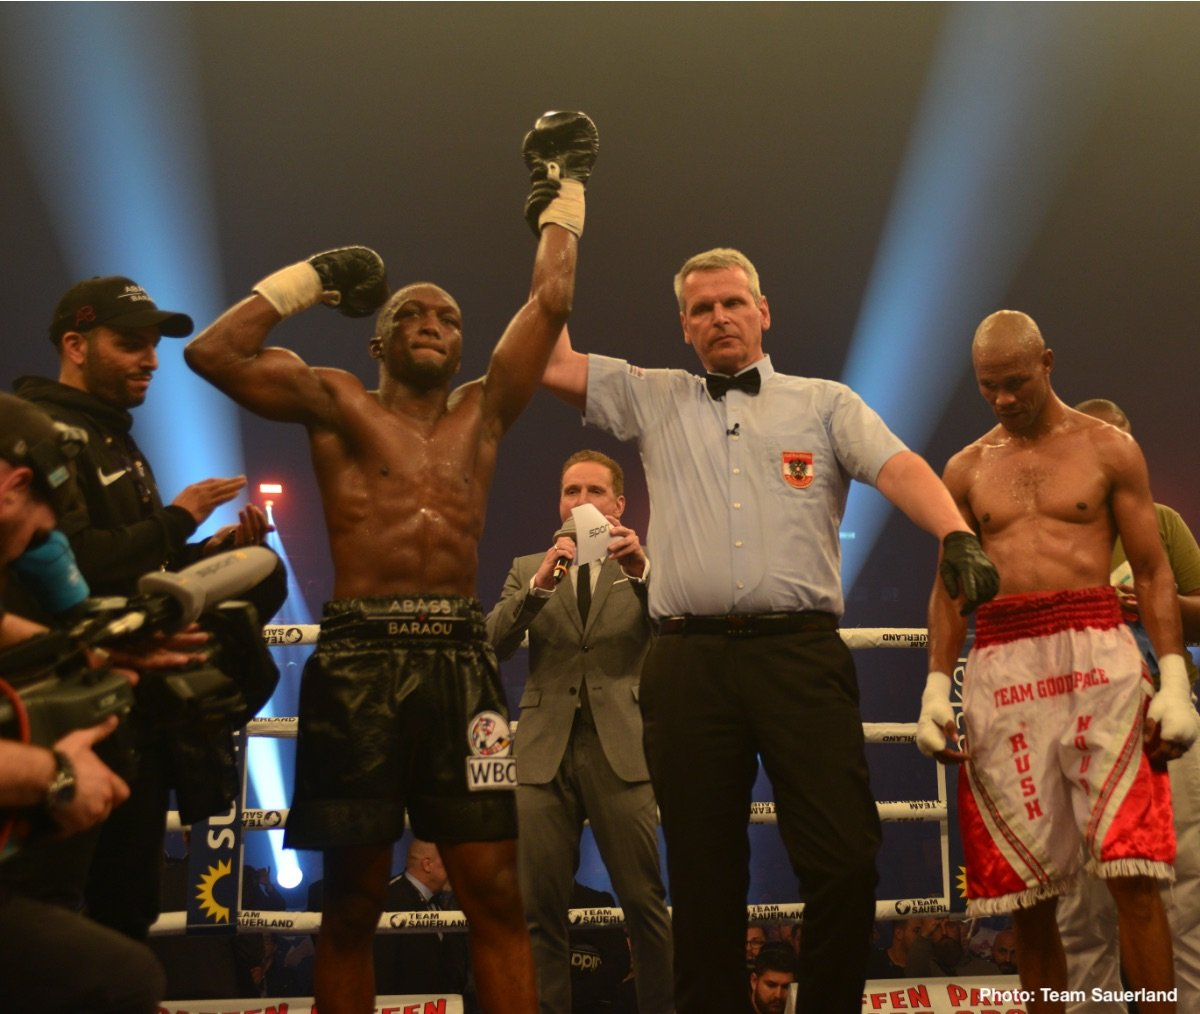 Abass Baraou - German light heavyweight Leon Bunn (14-0, 8 KOs) claimed the IBF International title by defeating countryman Leon Harth (18-4, 12 KOs) via technical knockout last night at the Fraport Arena in Frankfurt.